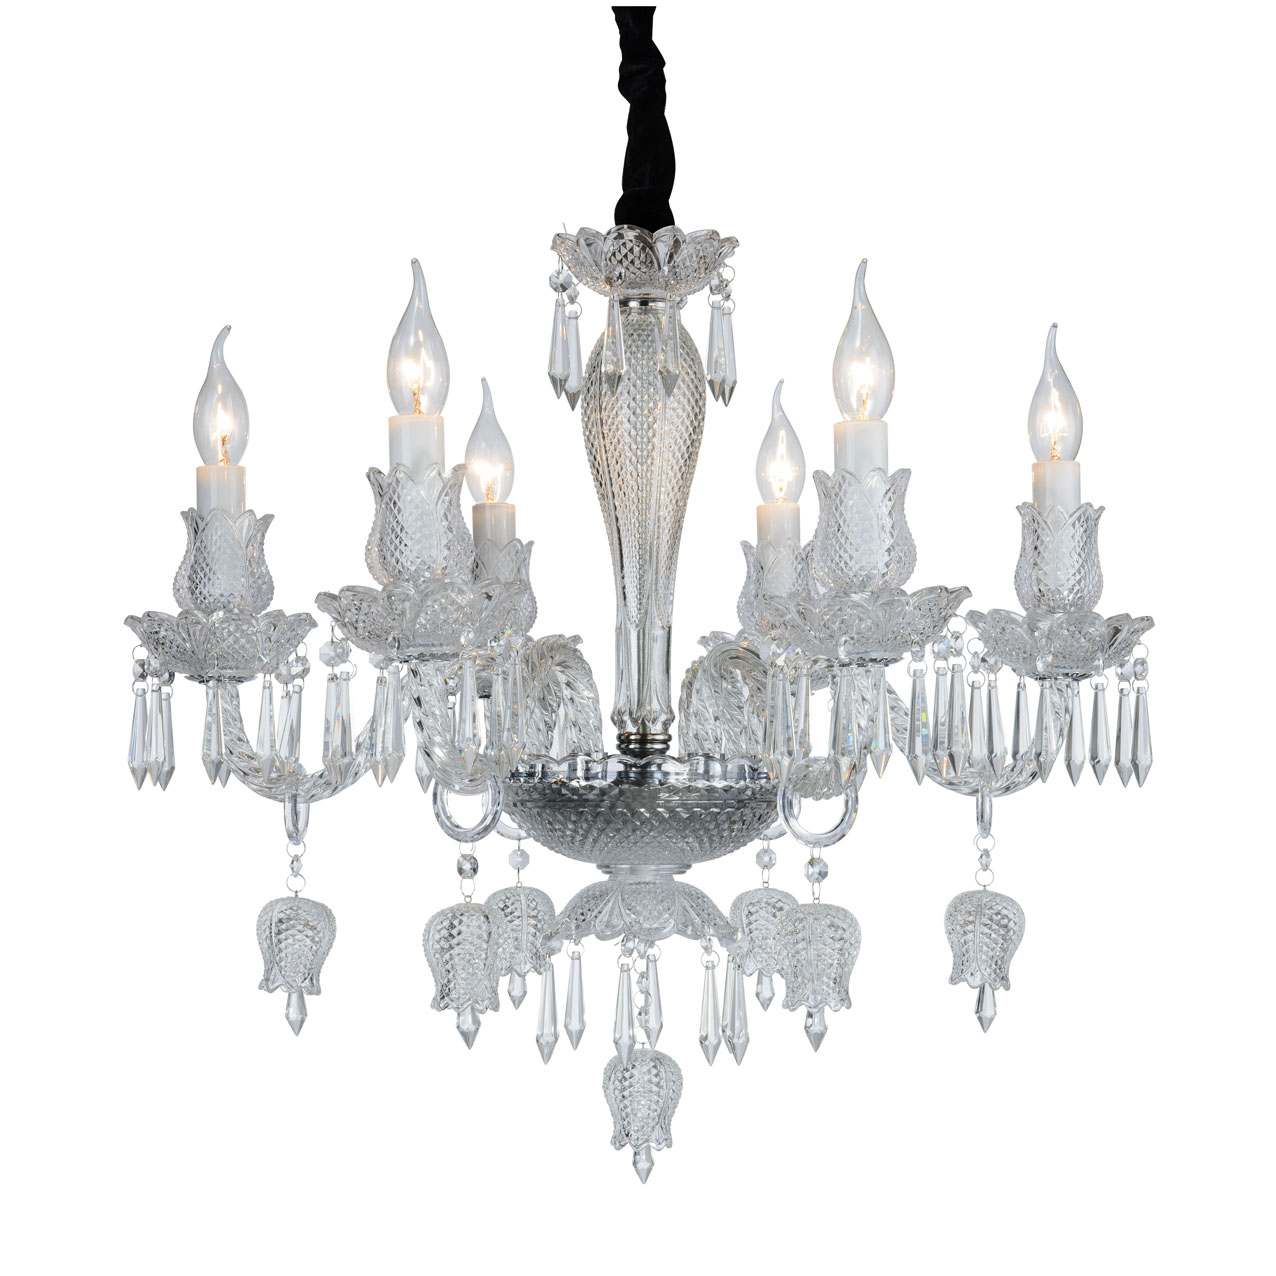 Chandelier ceiling Crystal Transparent Flowers and Tulips, 6 Arms 2016-6